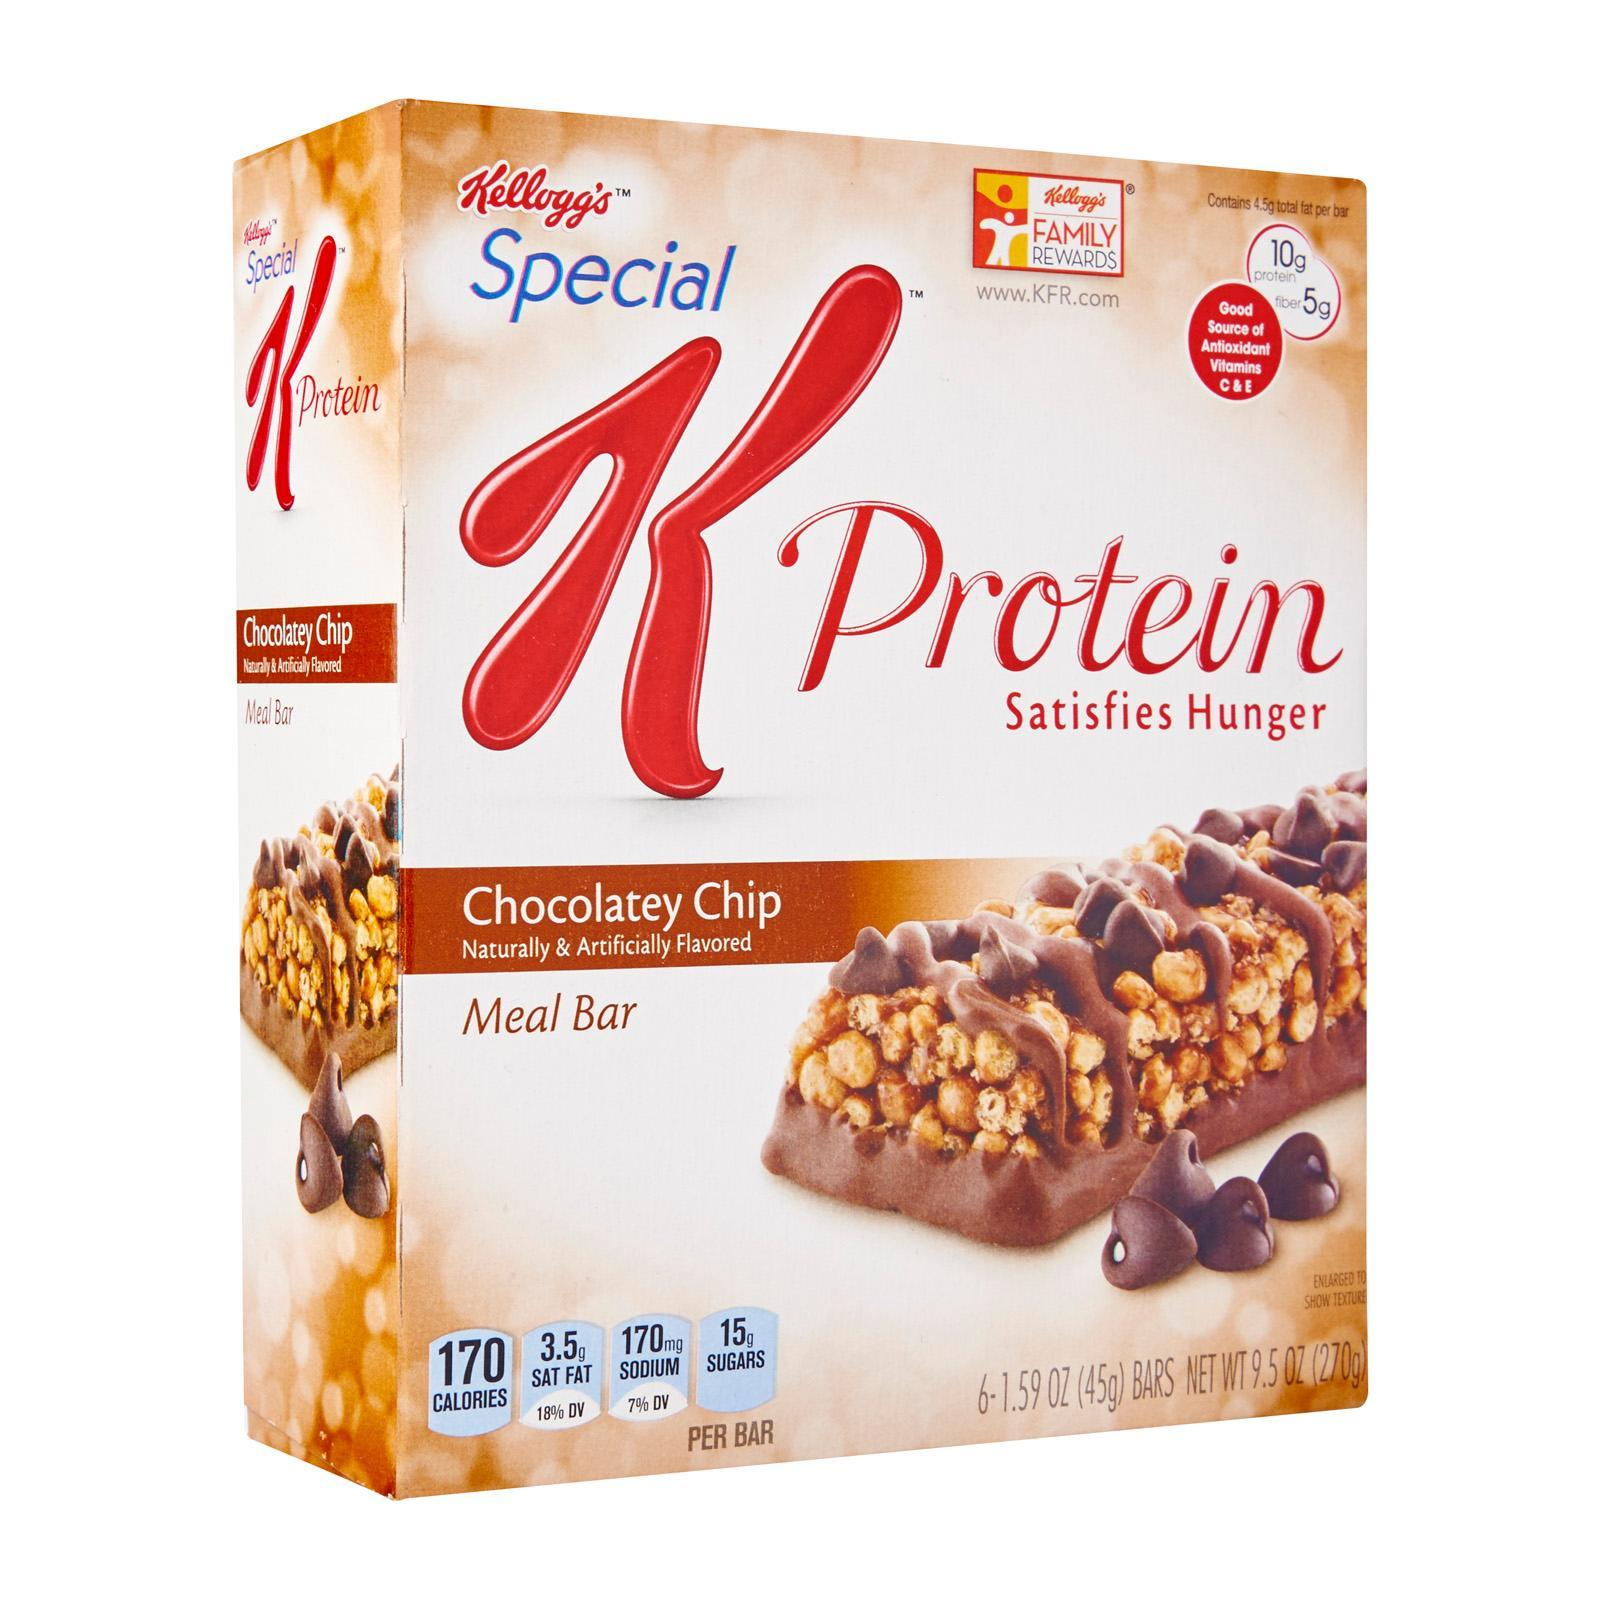 Kellogg's Special K Chocolate Chip Protein Meal Bar